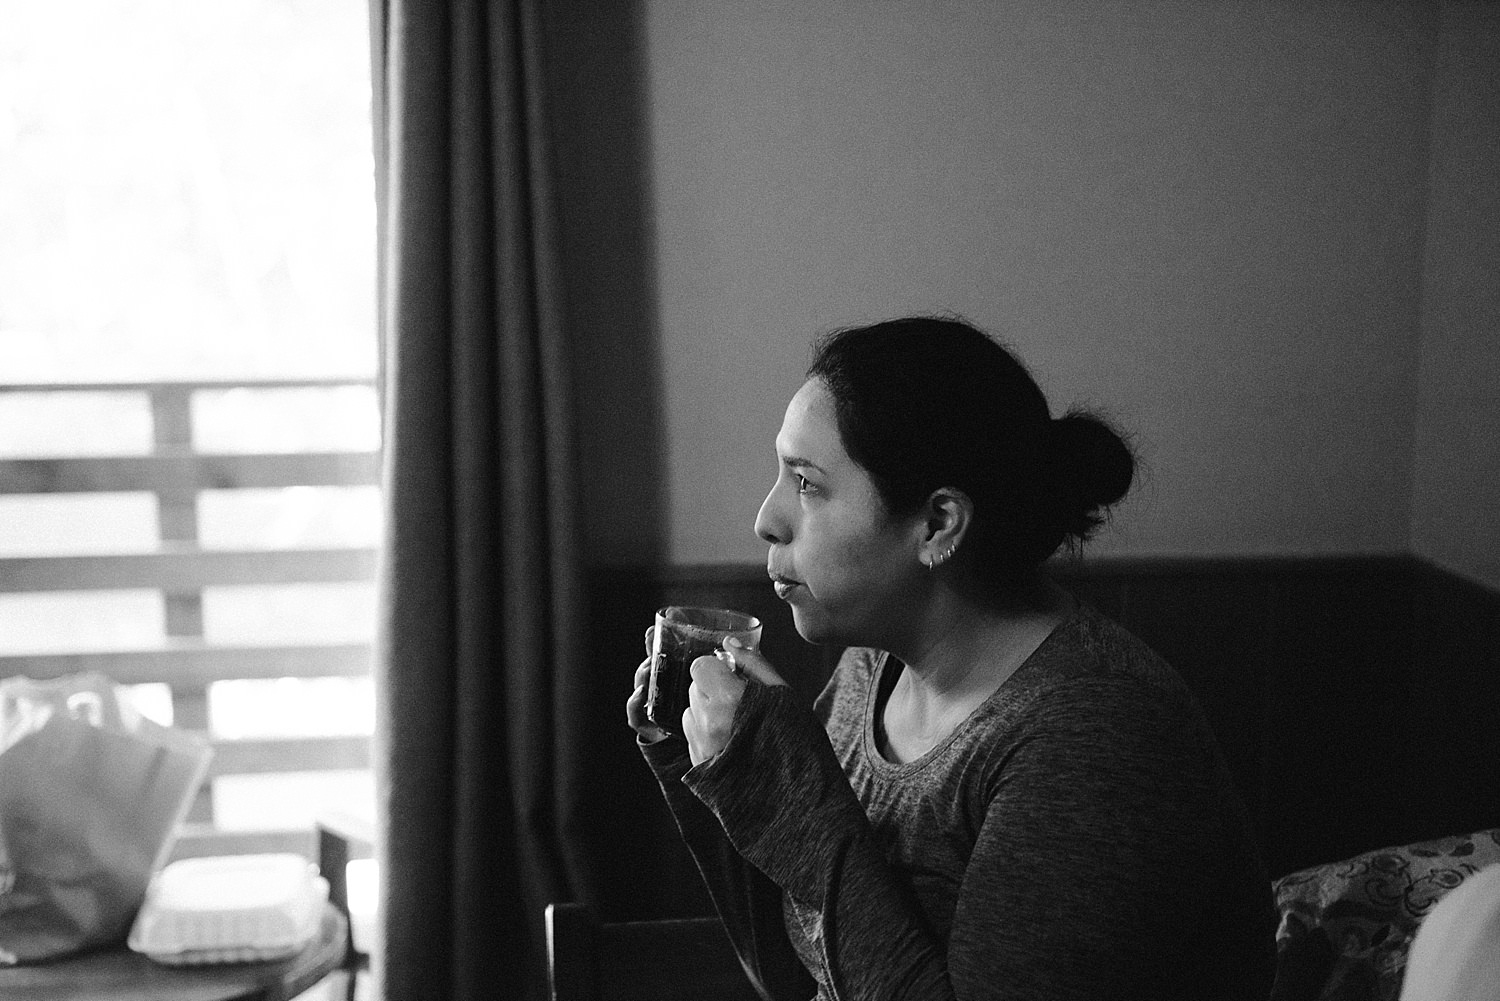 Sister of the bride drinking coffee